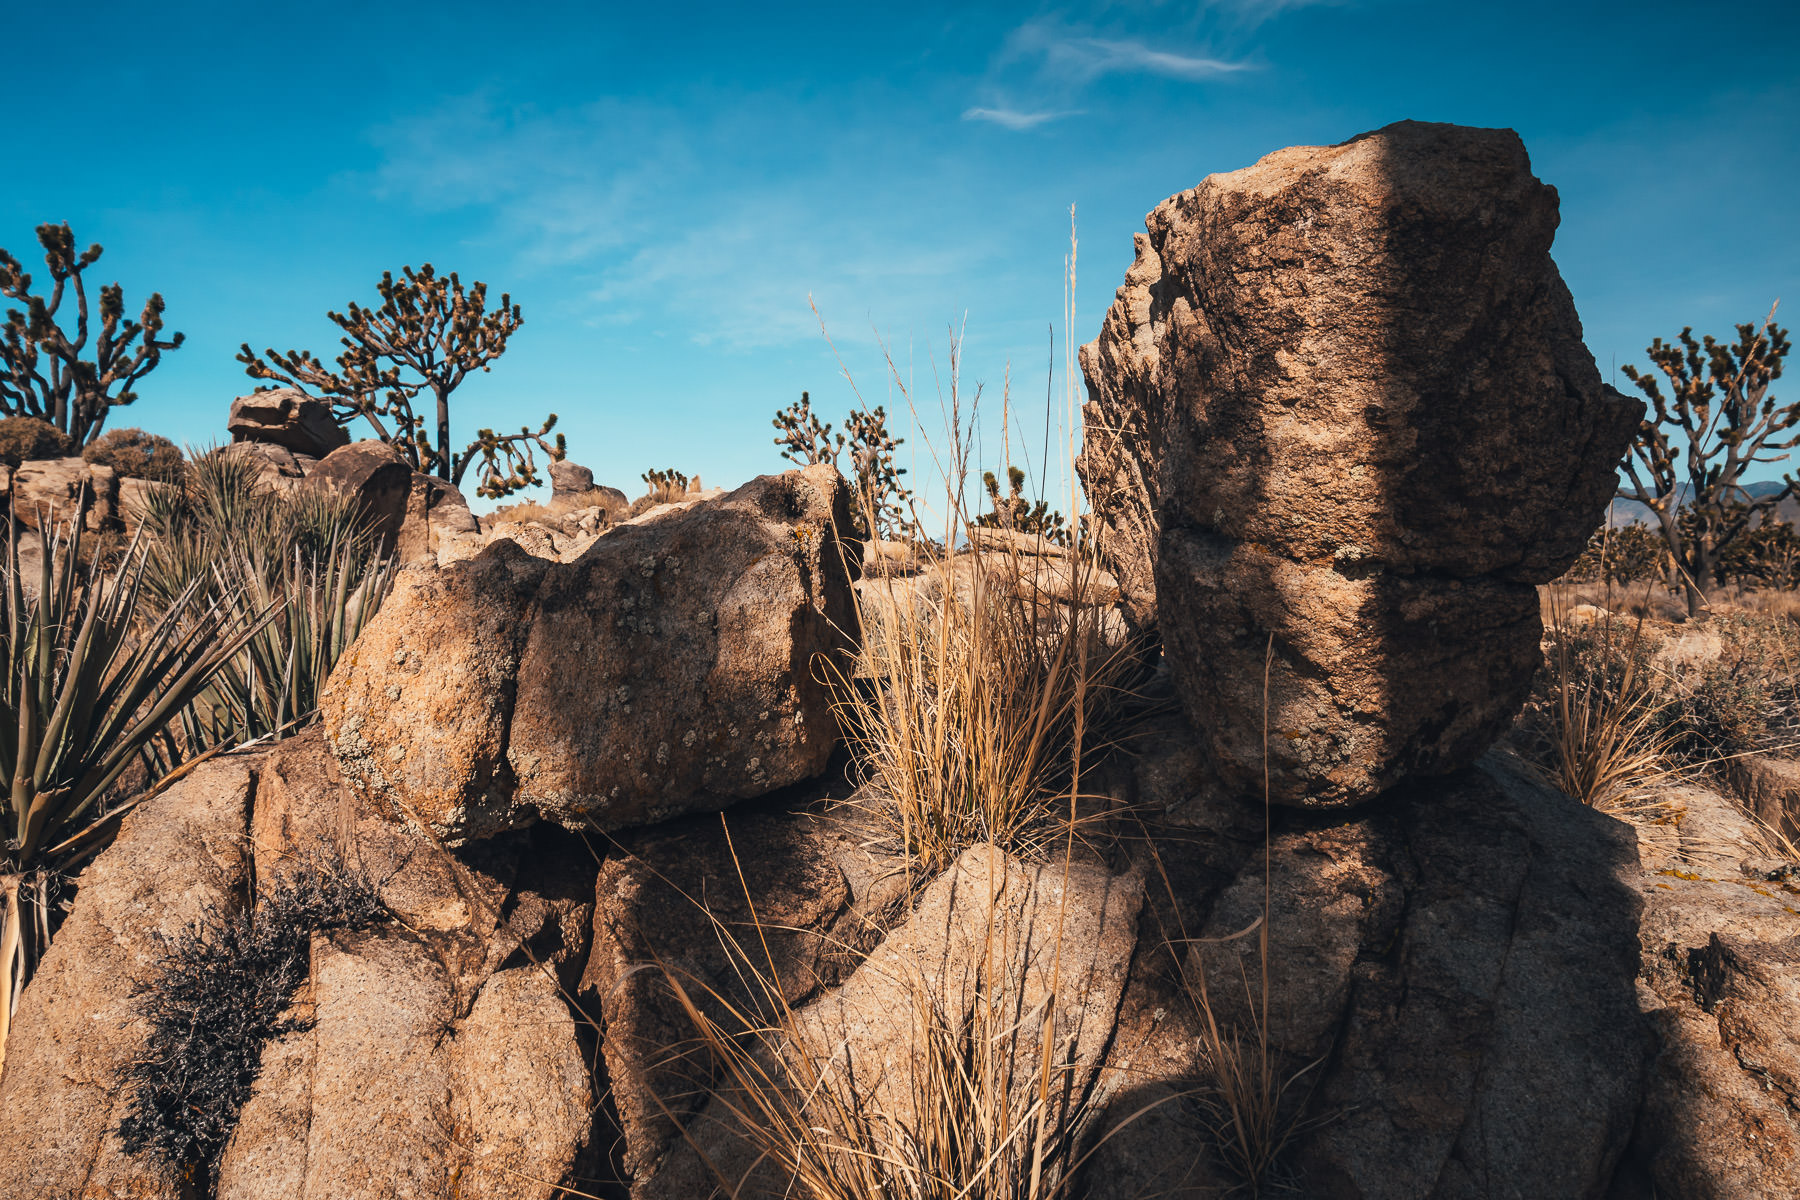 Rocks balance upon one another at the Mojave National Preserve, California.